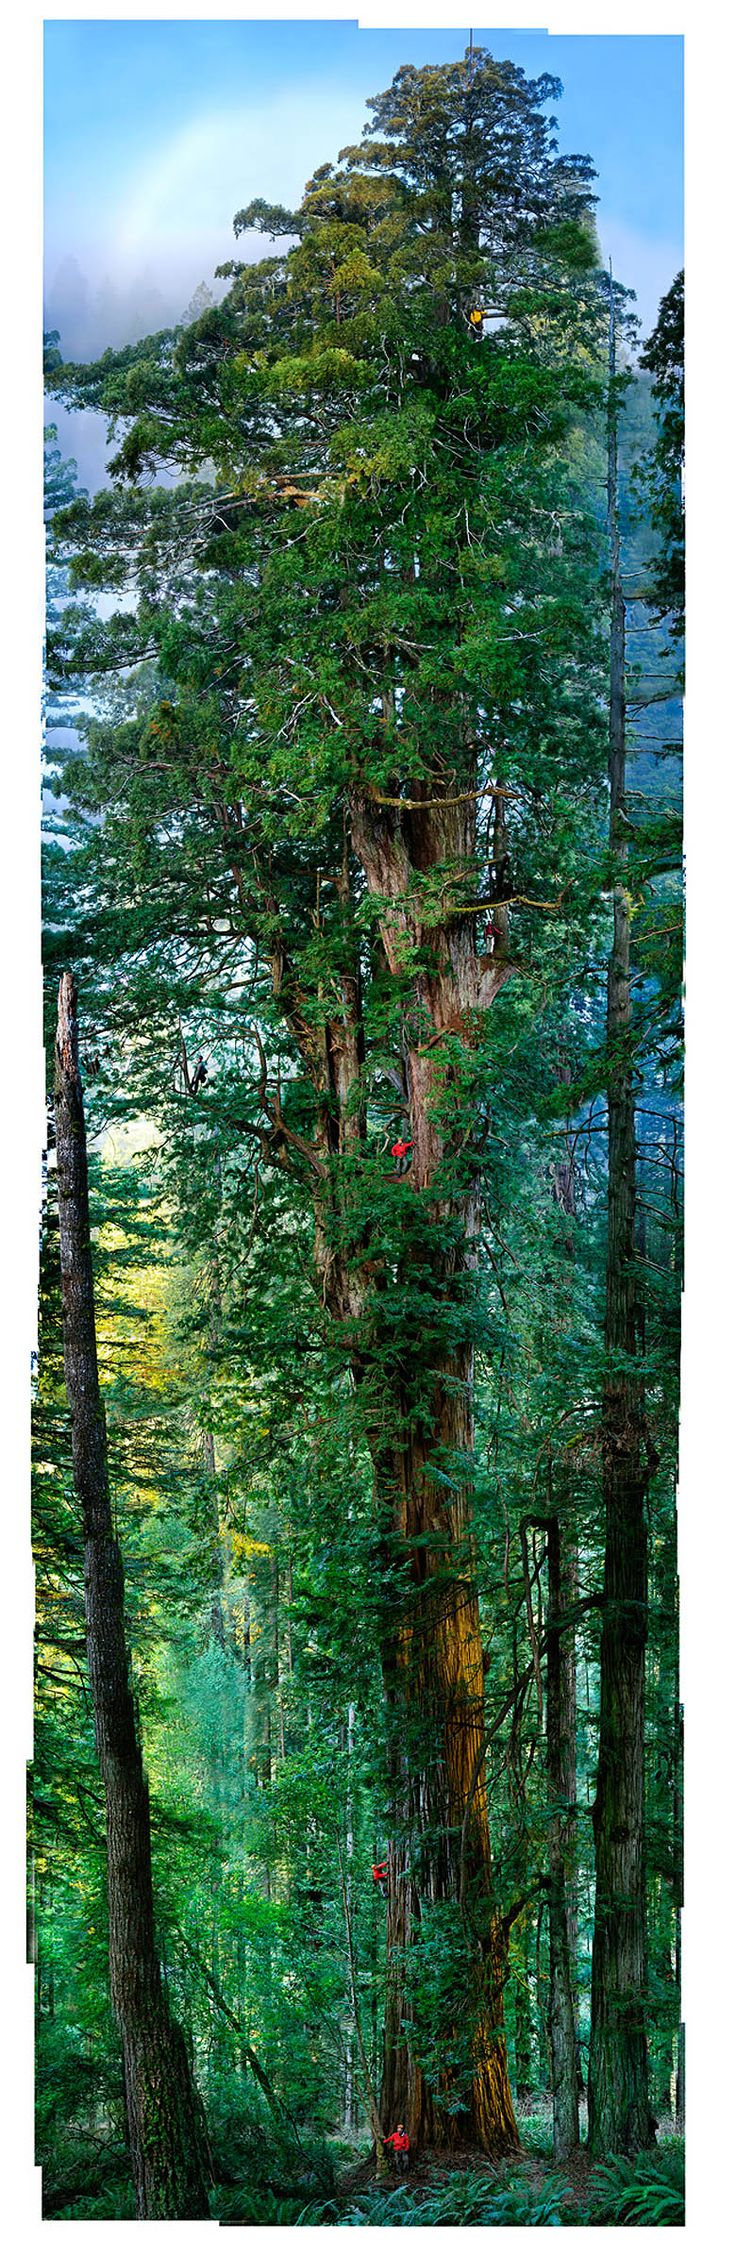 Full Sequoia Photo. National Geographic project: Nick Nichols.  Process: http://www.youtube.com/watch?v=C9LHjV48e9s